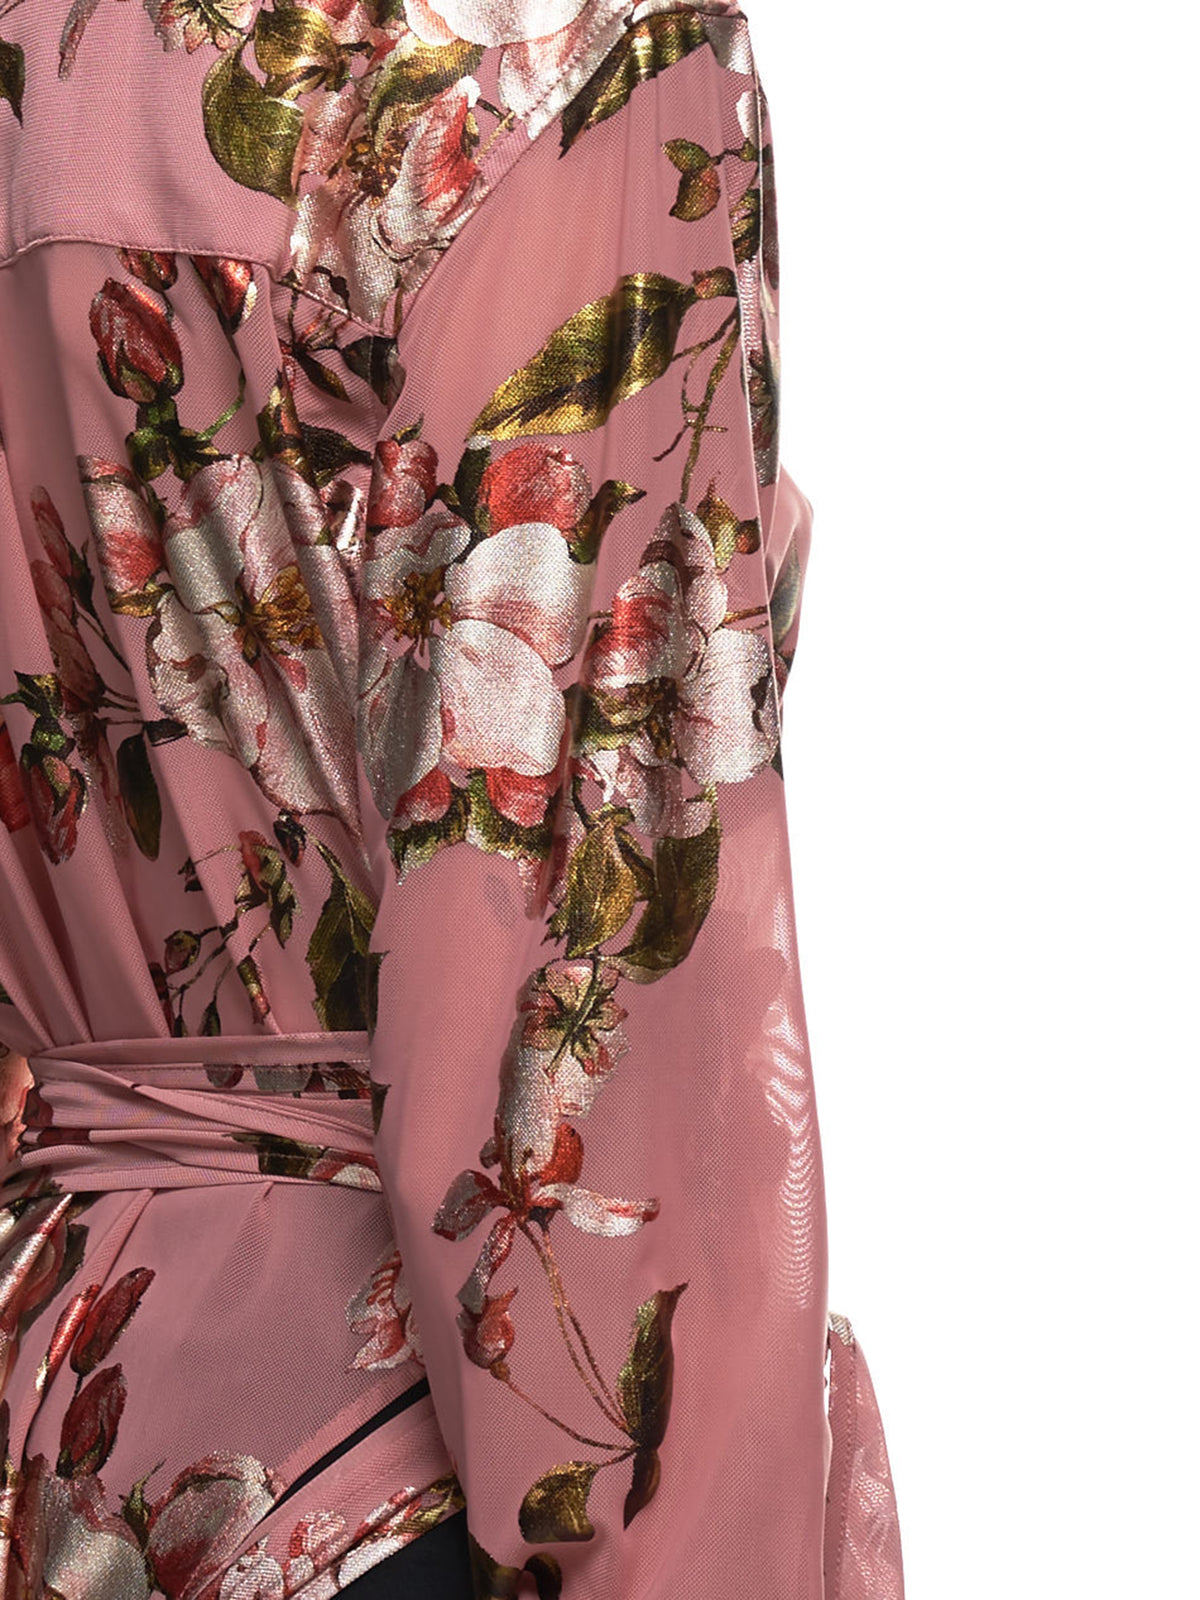 Body Blouse (WTOP23-PINK-FLORAL)